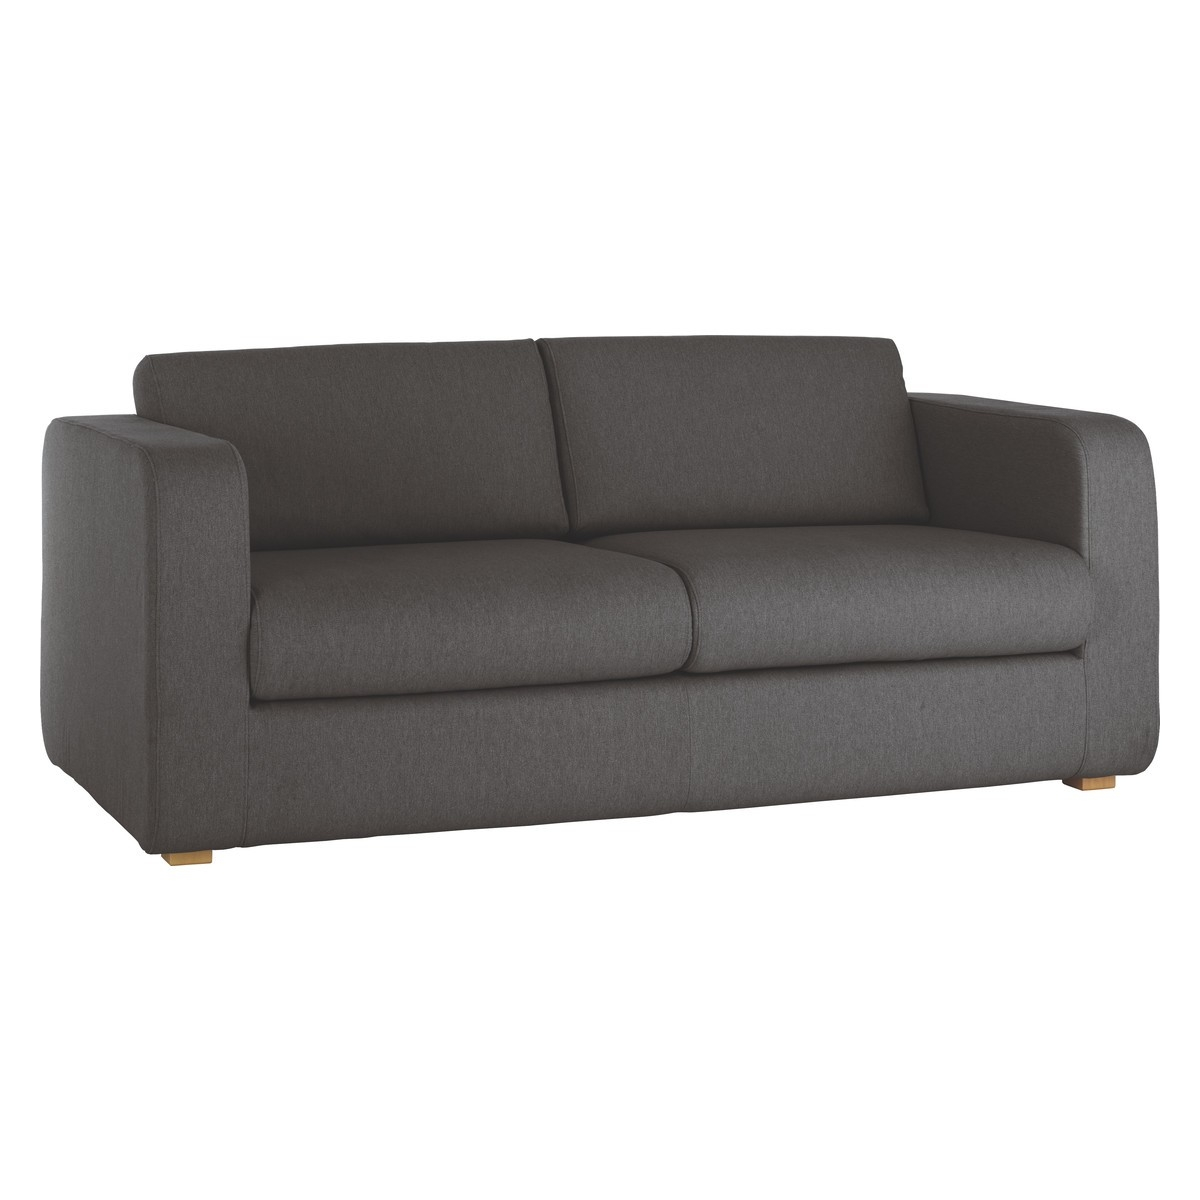 Porto Charcoal Fabric 3 Seater Sofa Buy Now At Habitat Uk With Three Seater Sofas (Image 14 of 15)